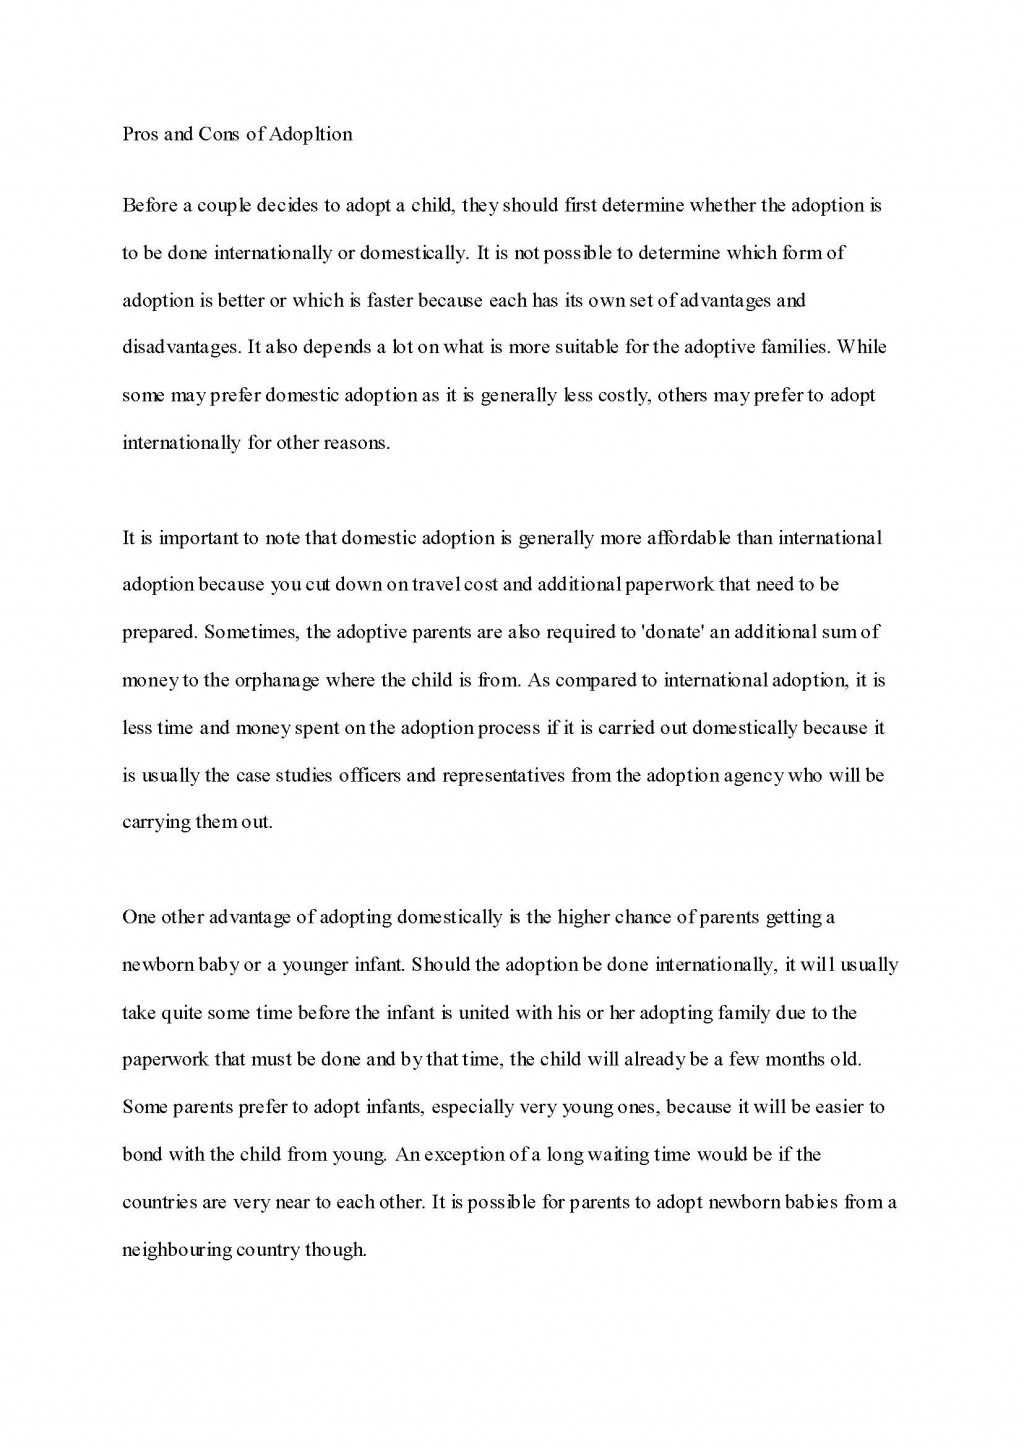 003 Example Essays Essay Adoption Unusual On Gun Violence College Ivy League Argumentative Examples For Middle School Students Large